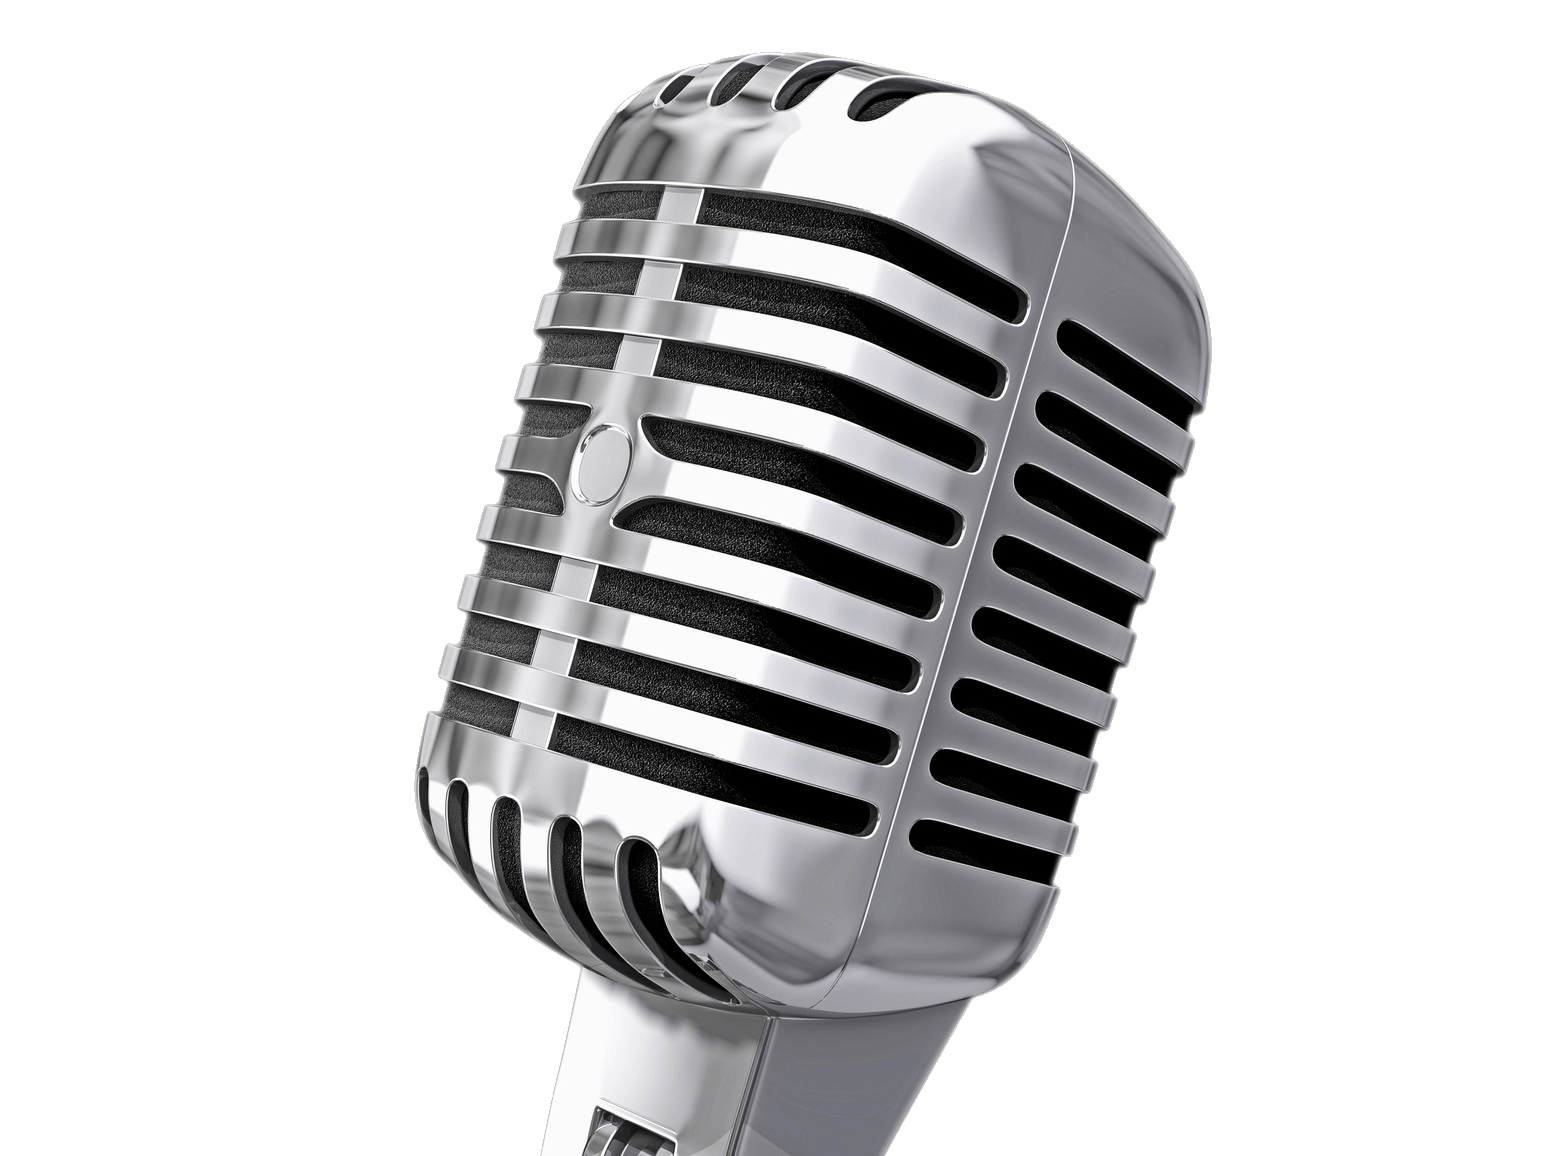 Vintage transparent png stickpng. Microphone clipart audio